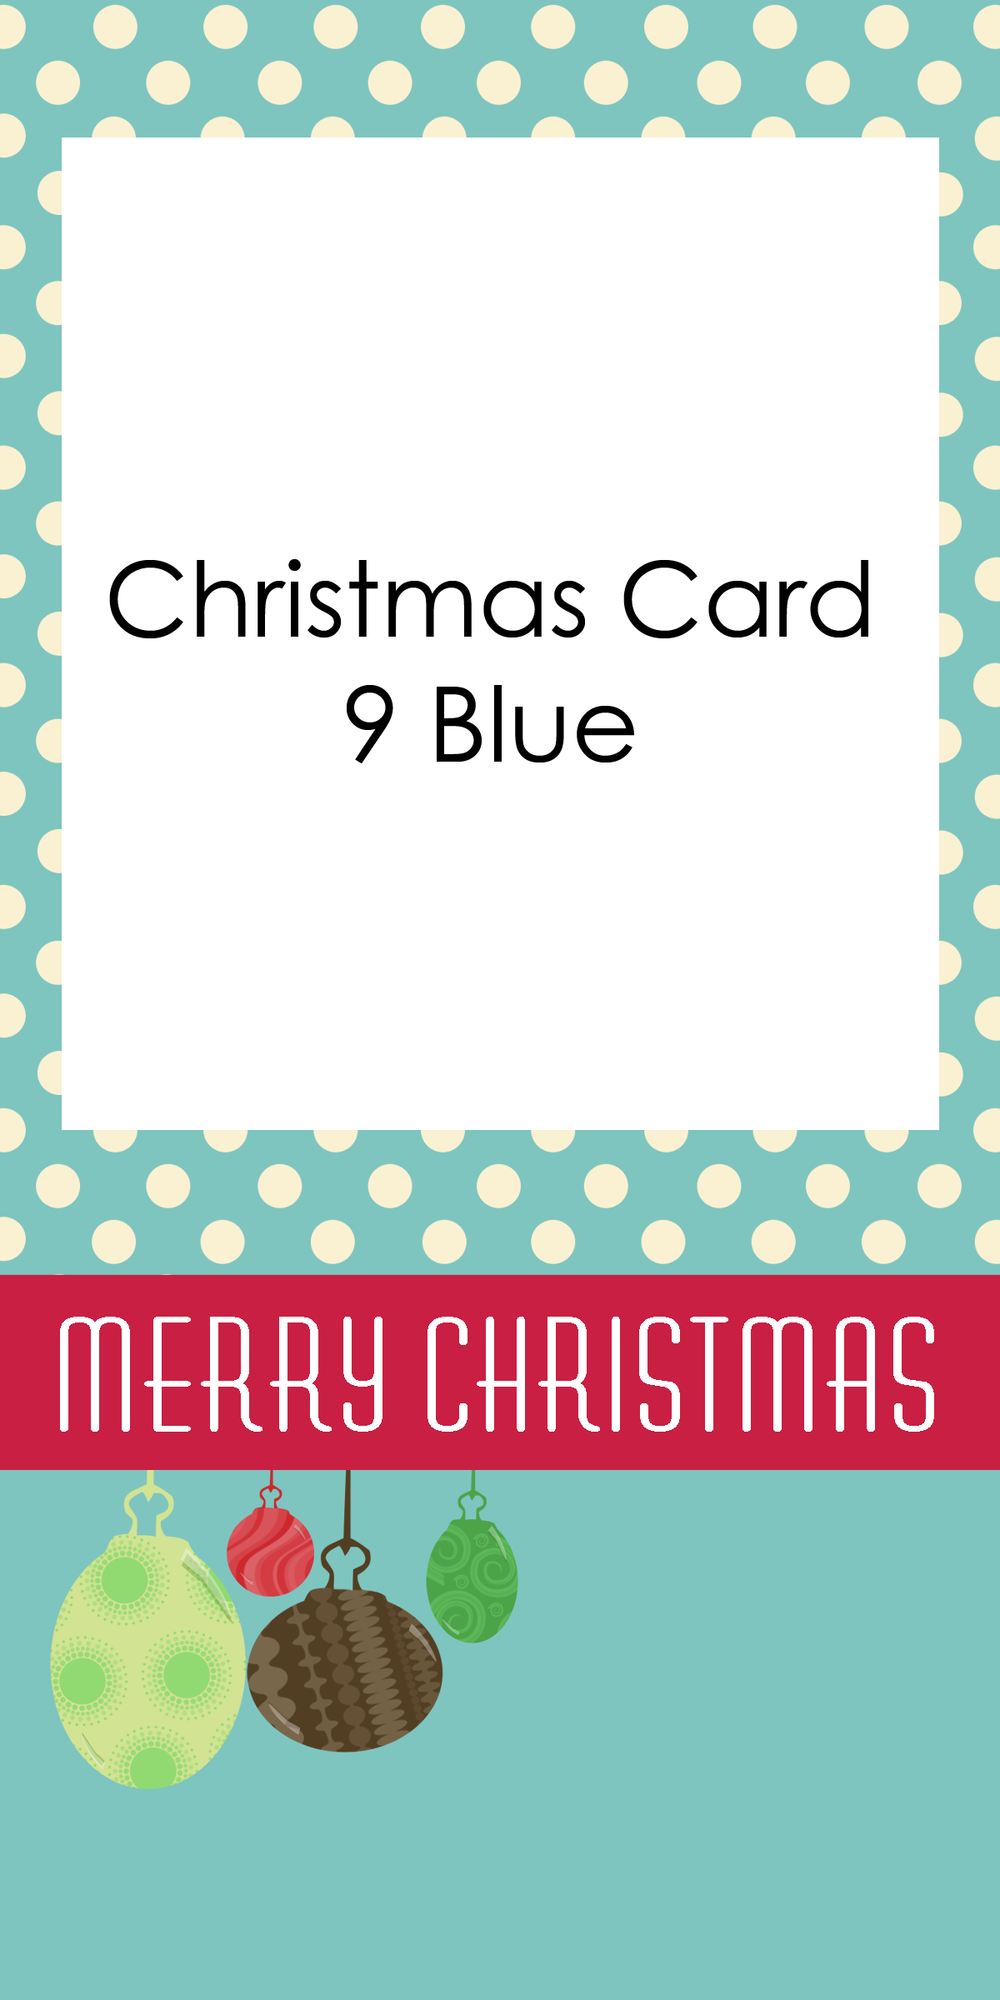 4x8-card9BLUE.png